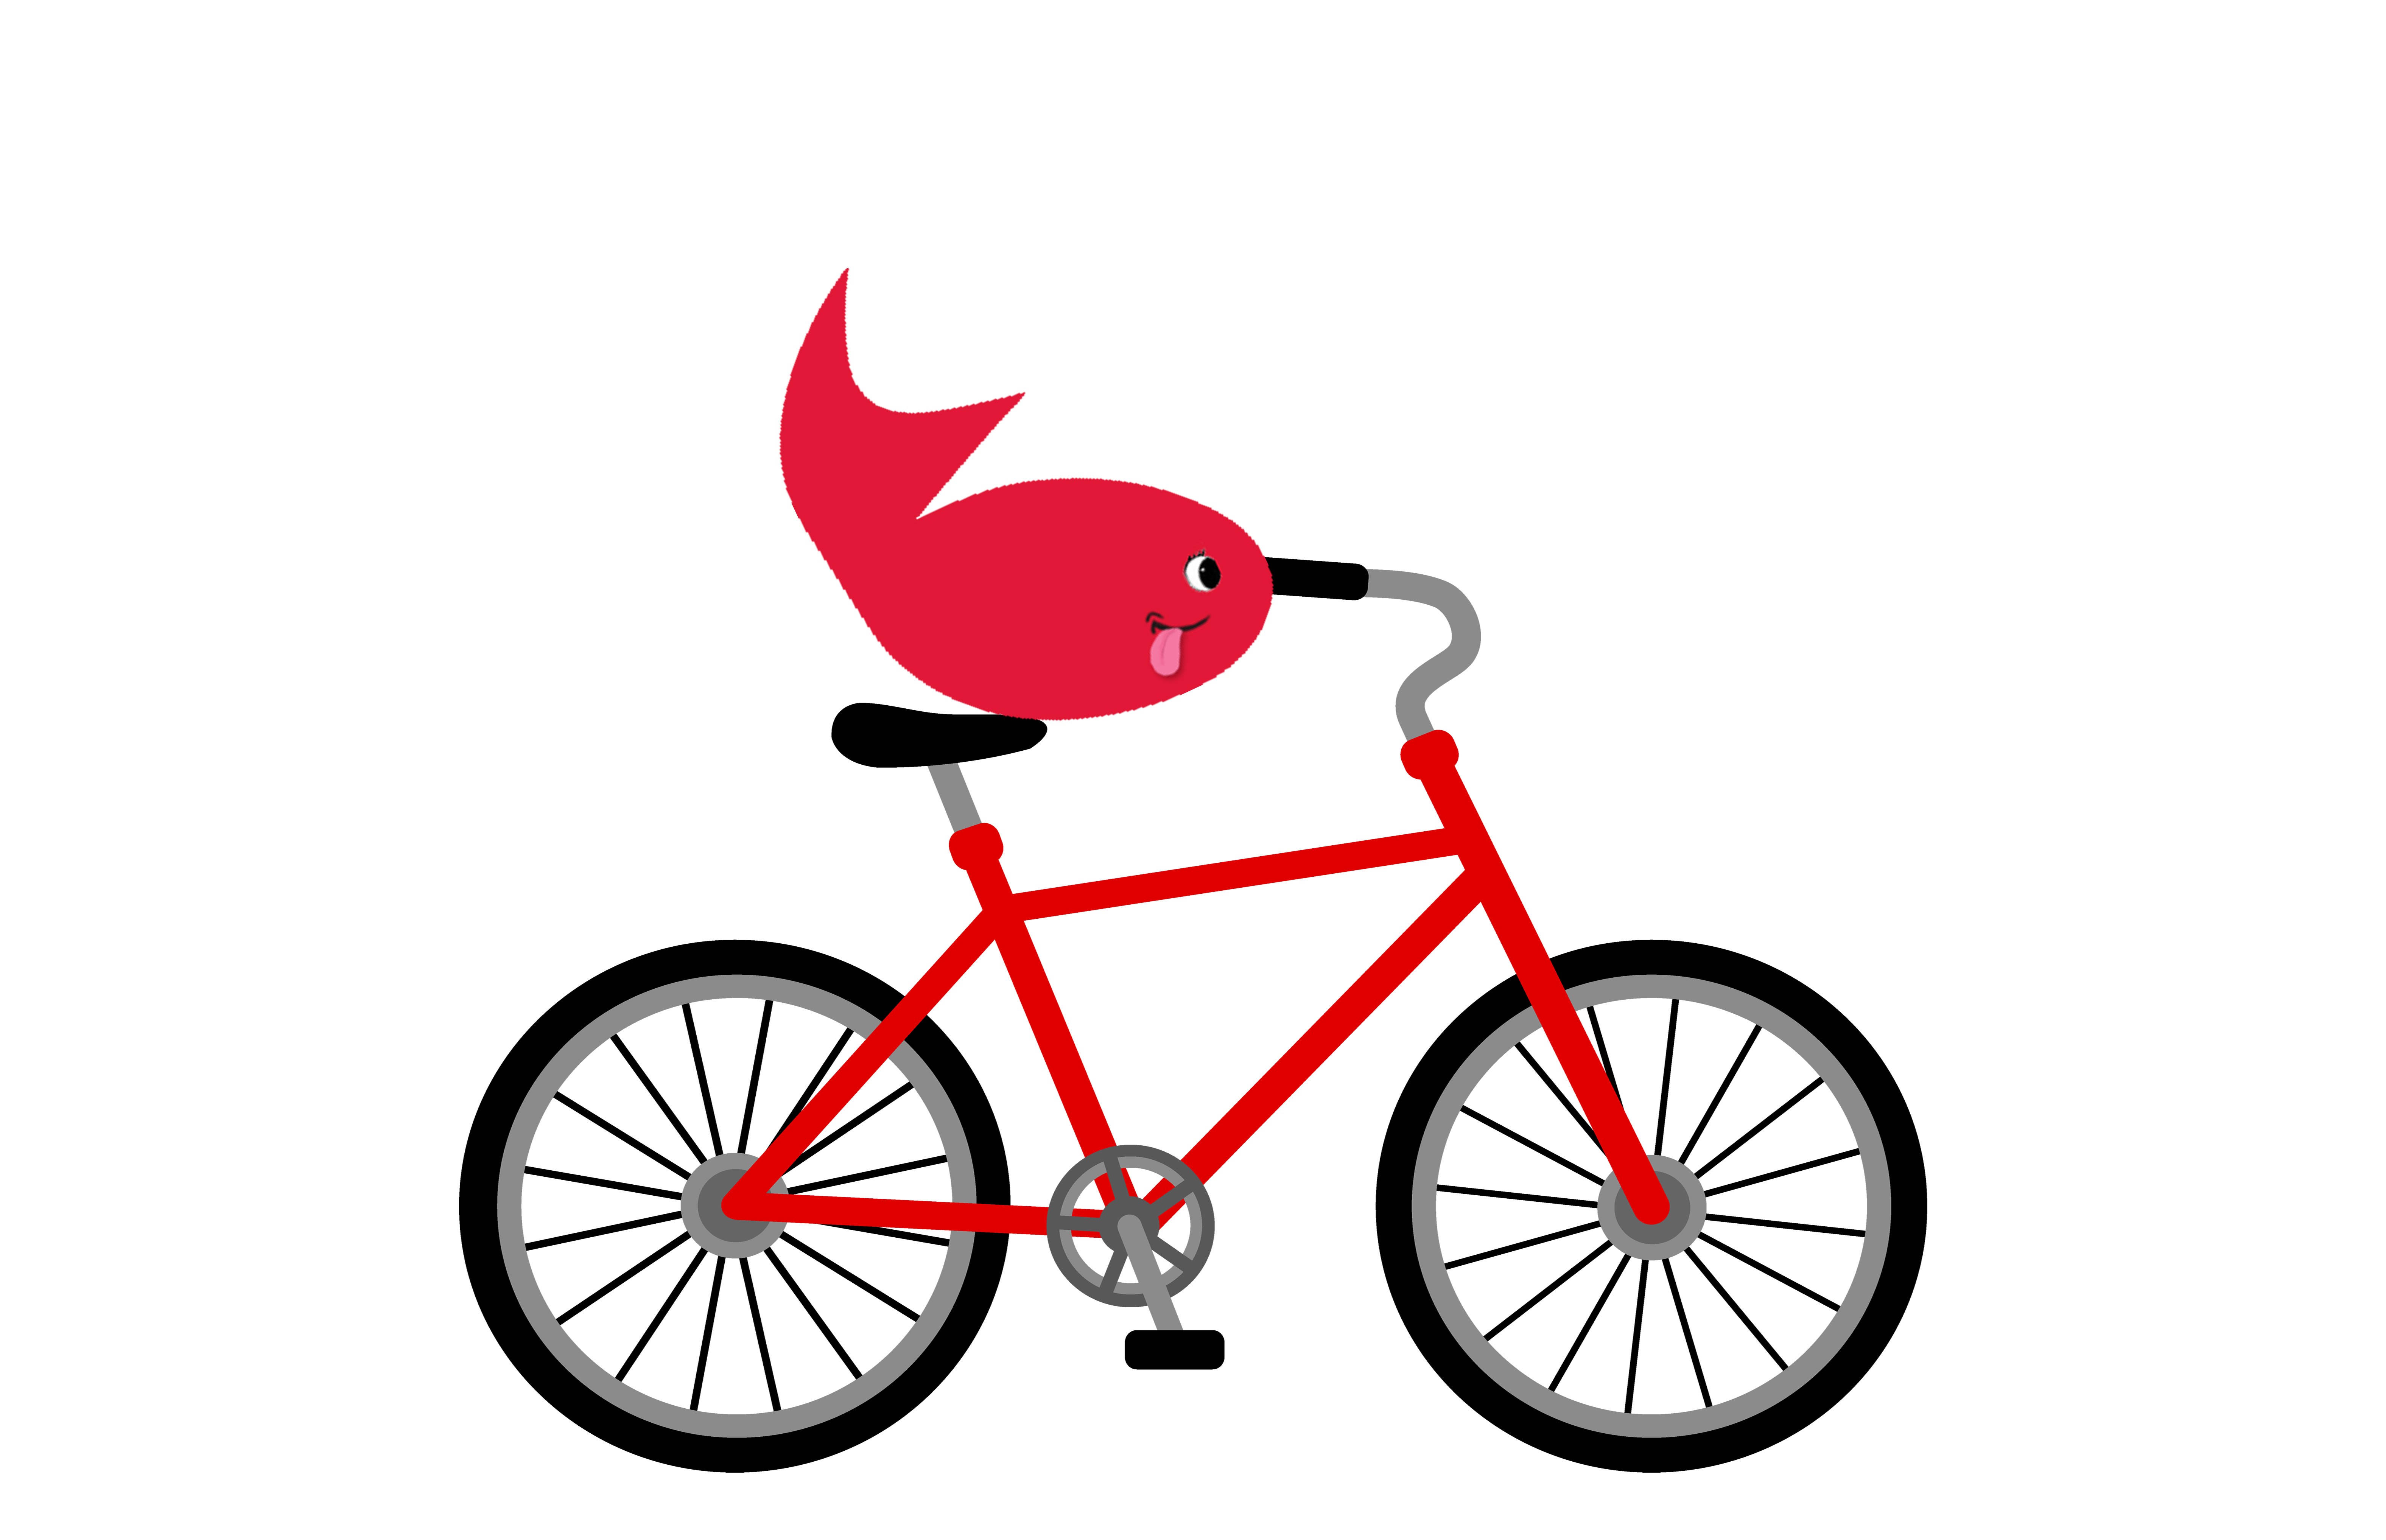 Firefish on a Bicycle